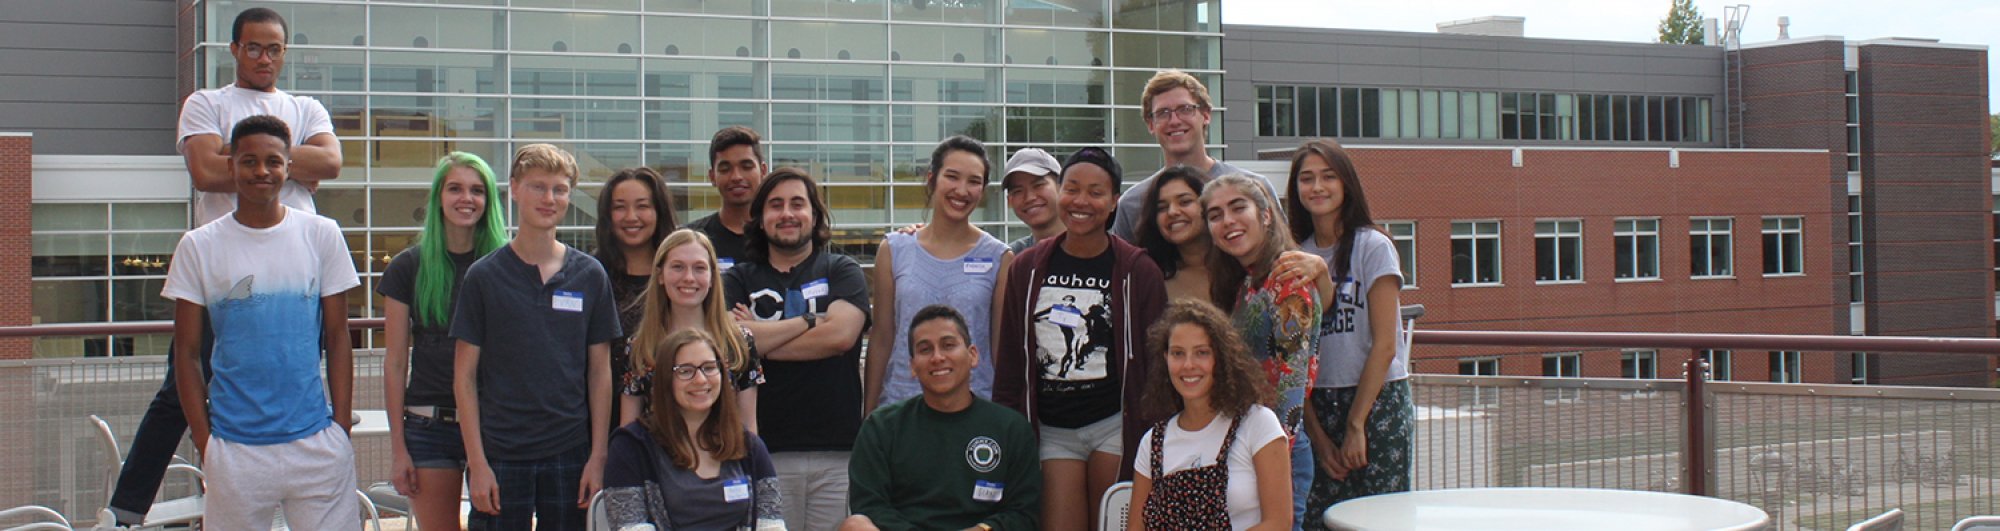 Students stand as a group for a posed photo.